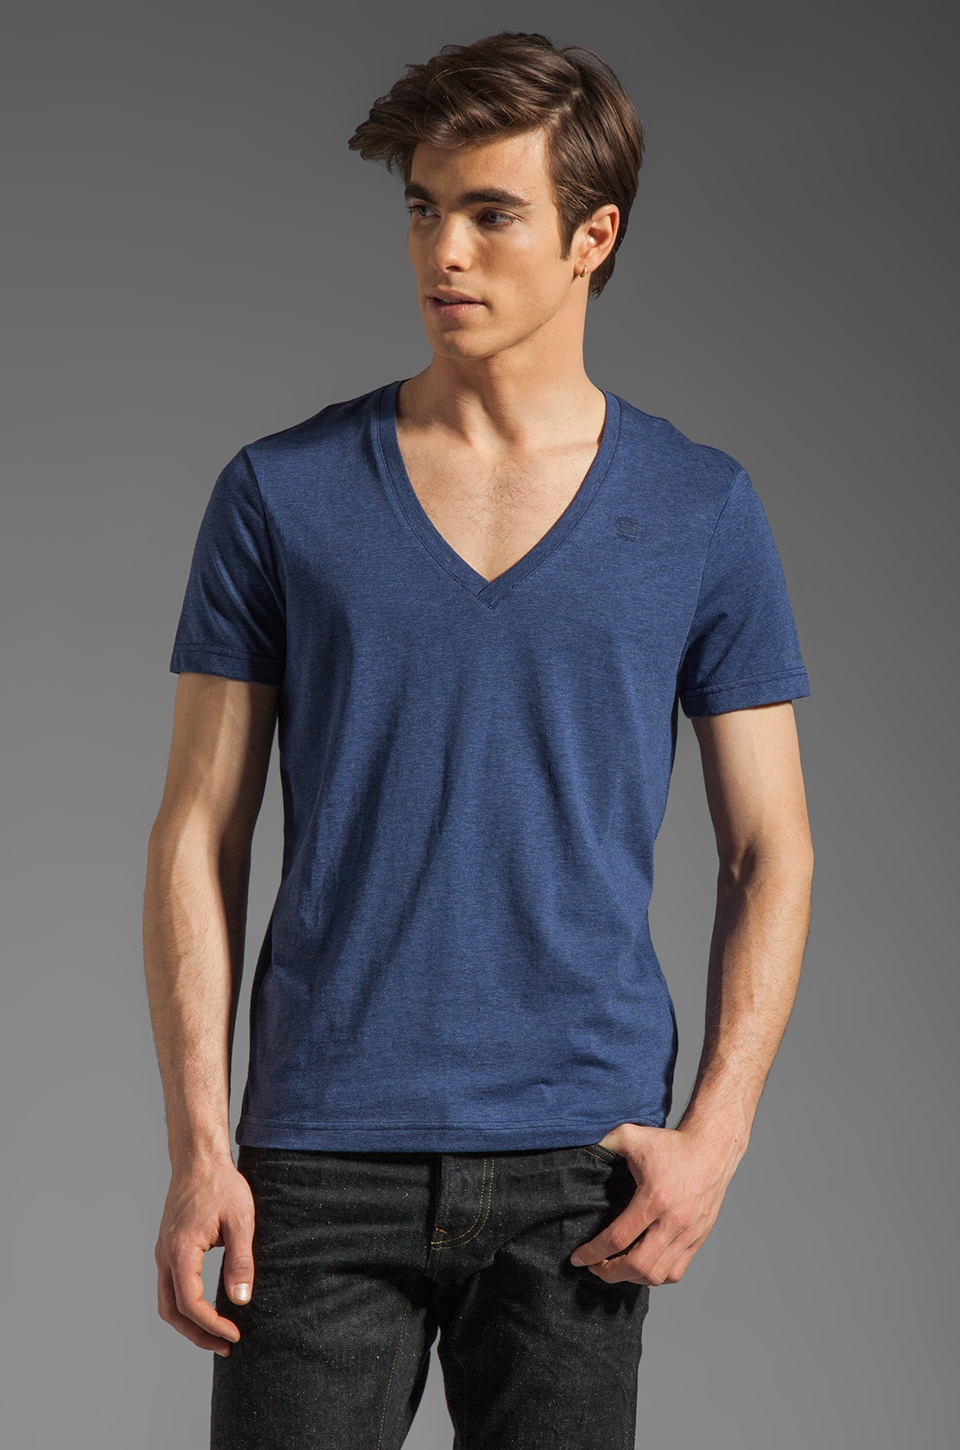 G-Star Heather V Neck 2 Pack in Shade